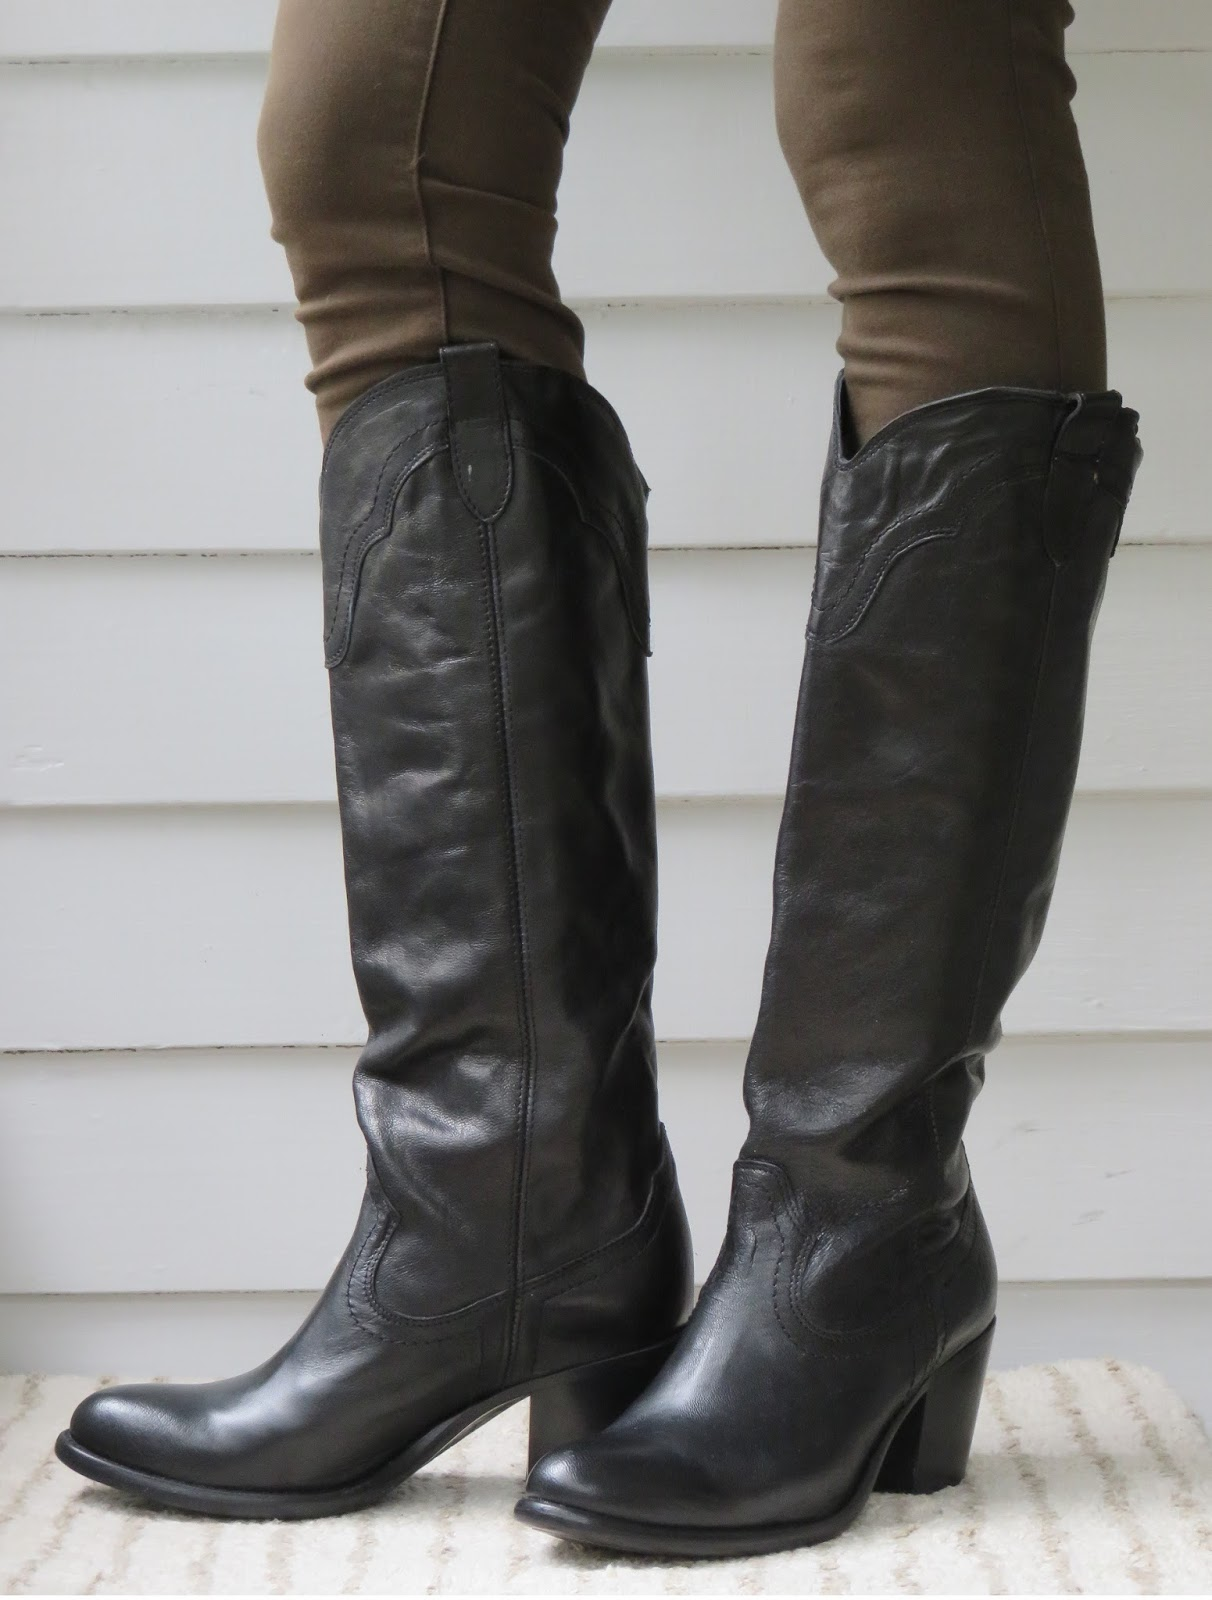 Howdy Slim! Riding Boots for Thin Calves: 2015